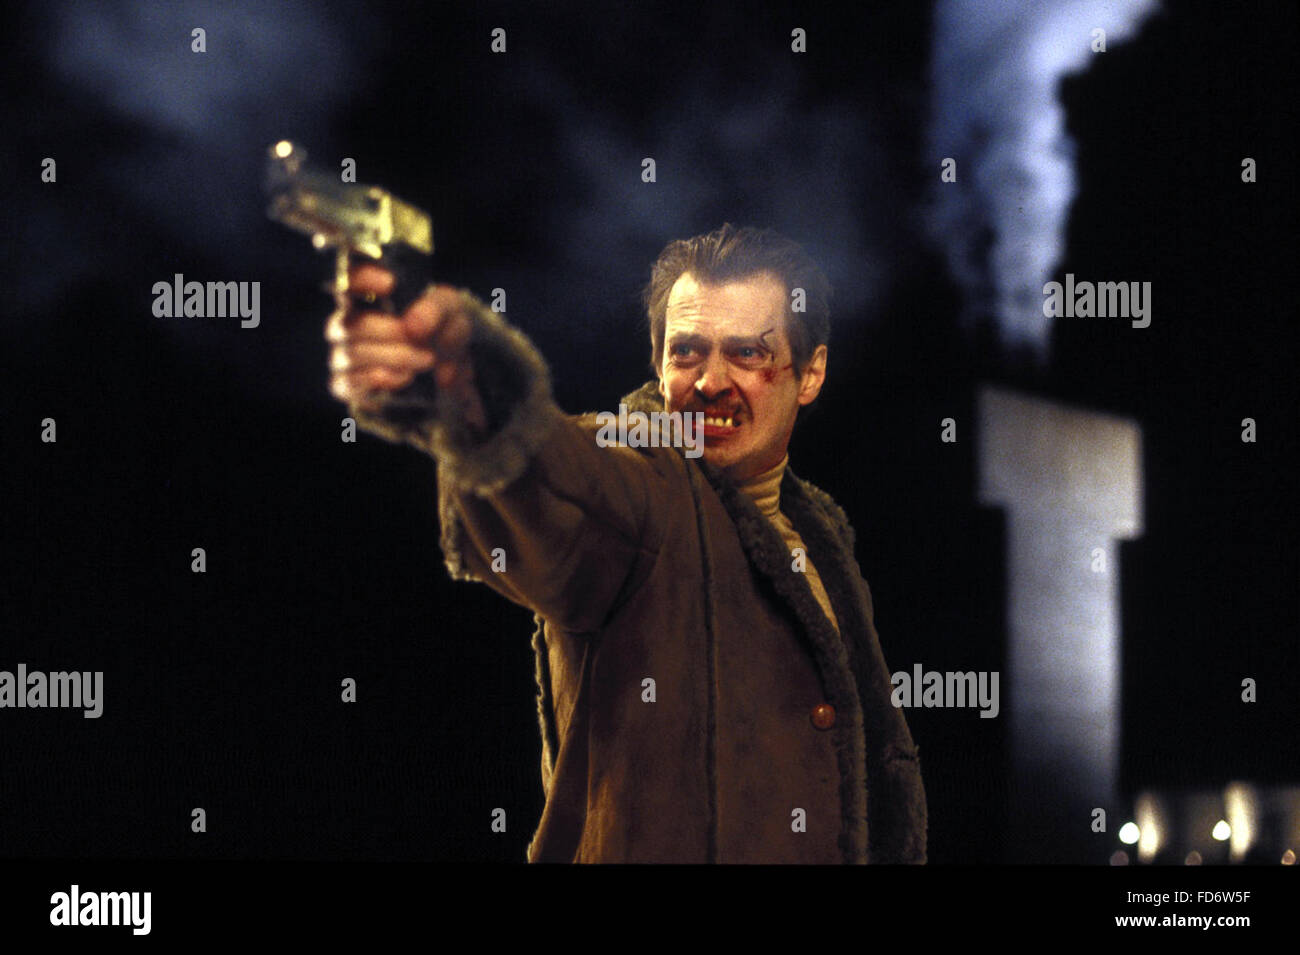 fargo 1996 stock photos amp fargo 1996 stock images alamy